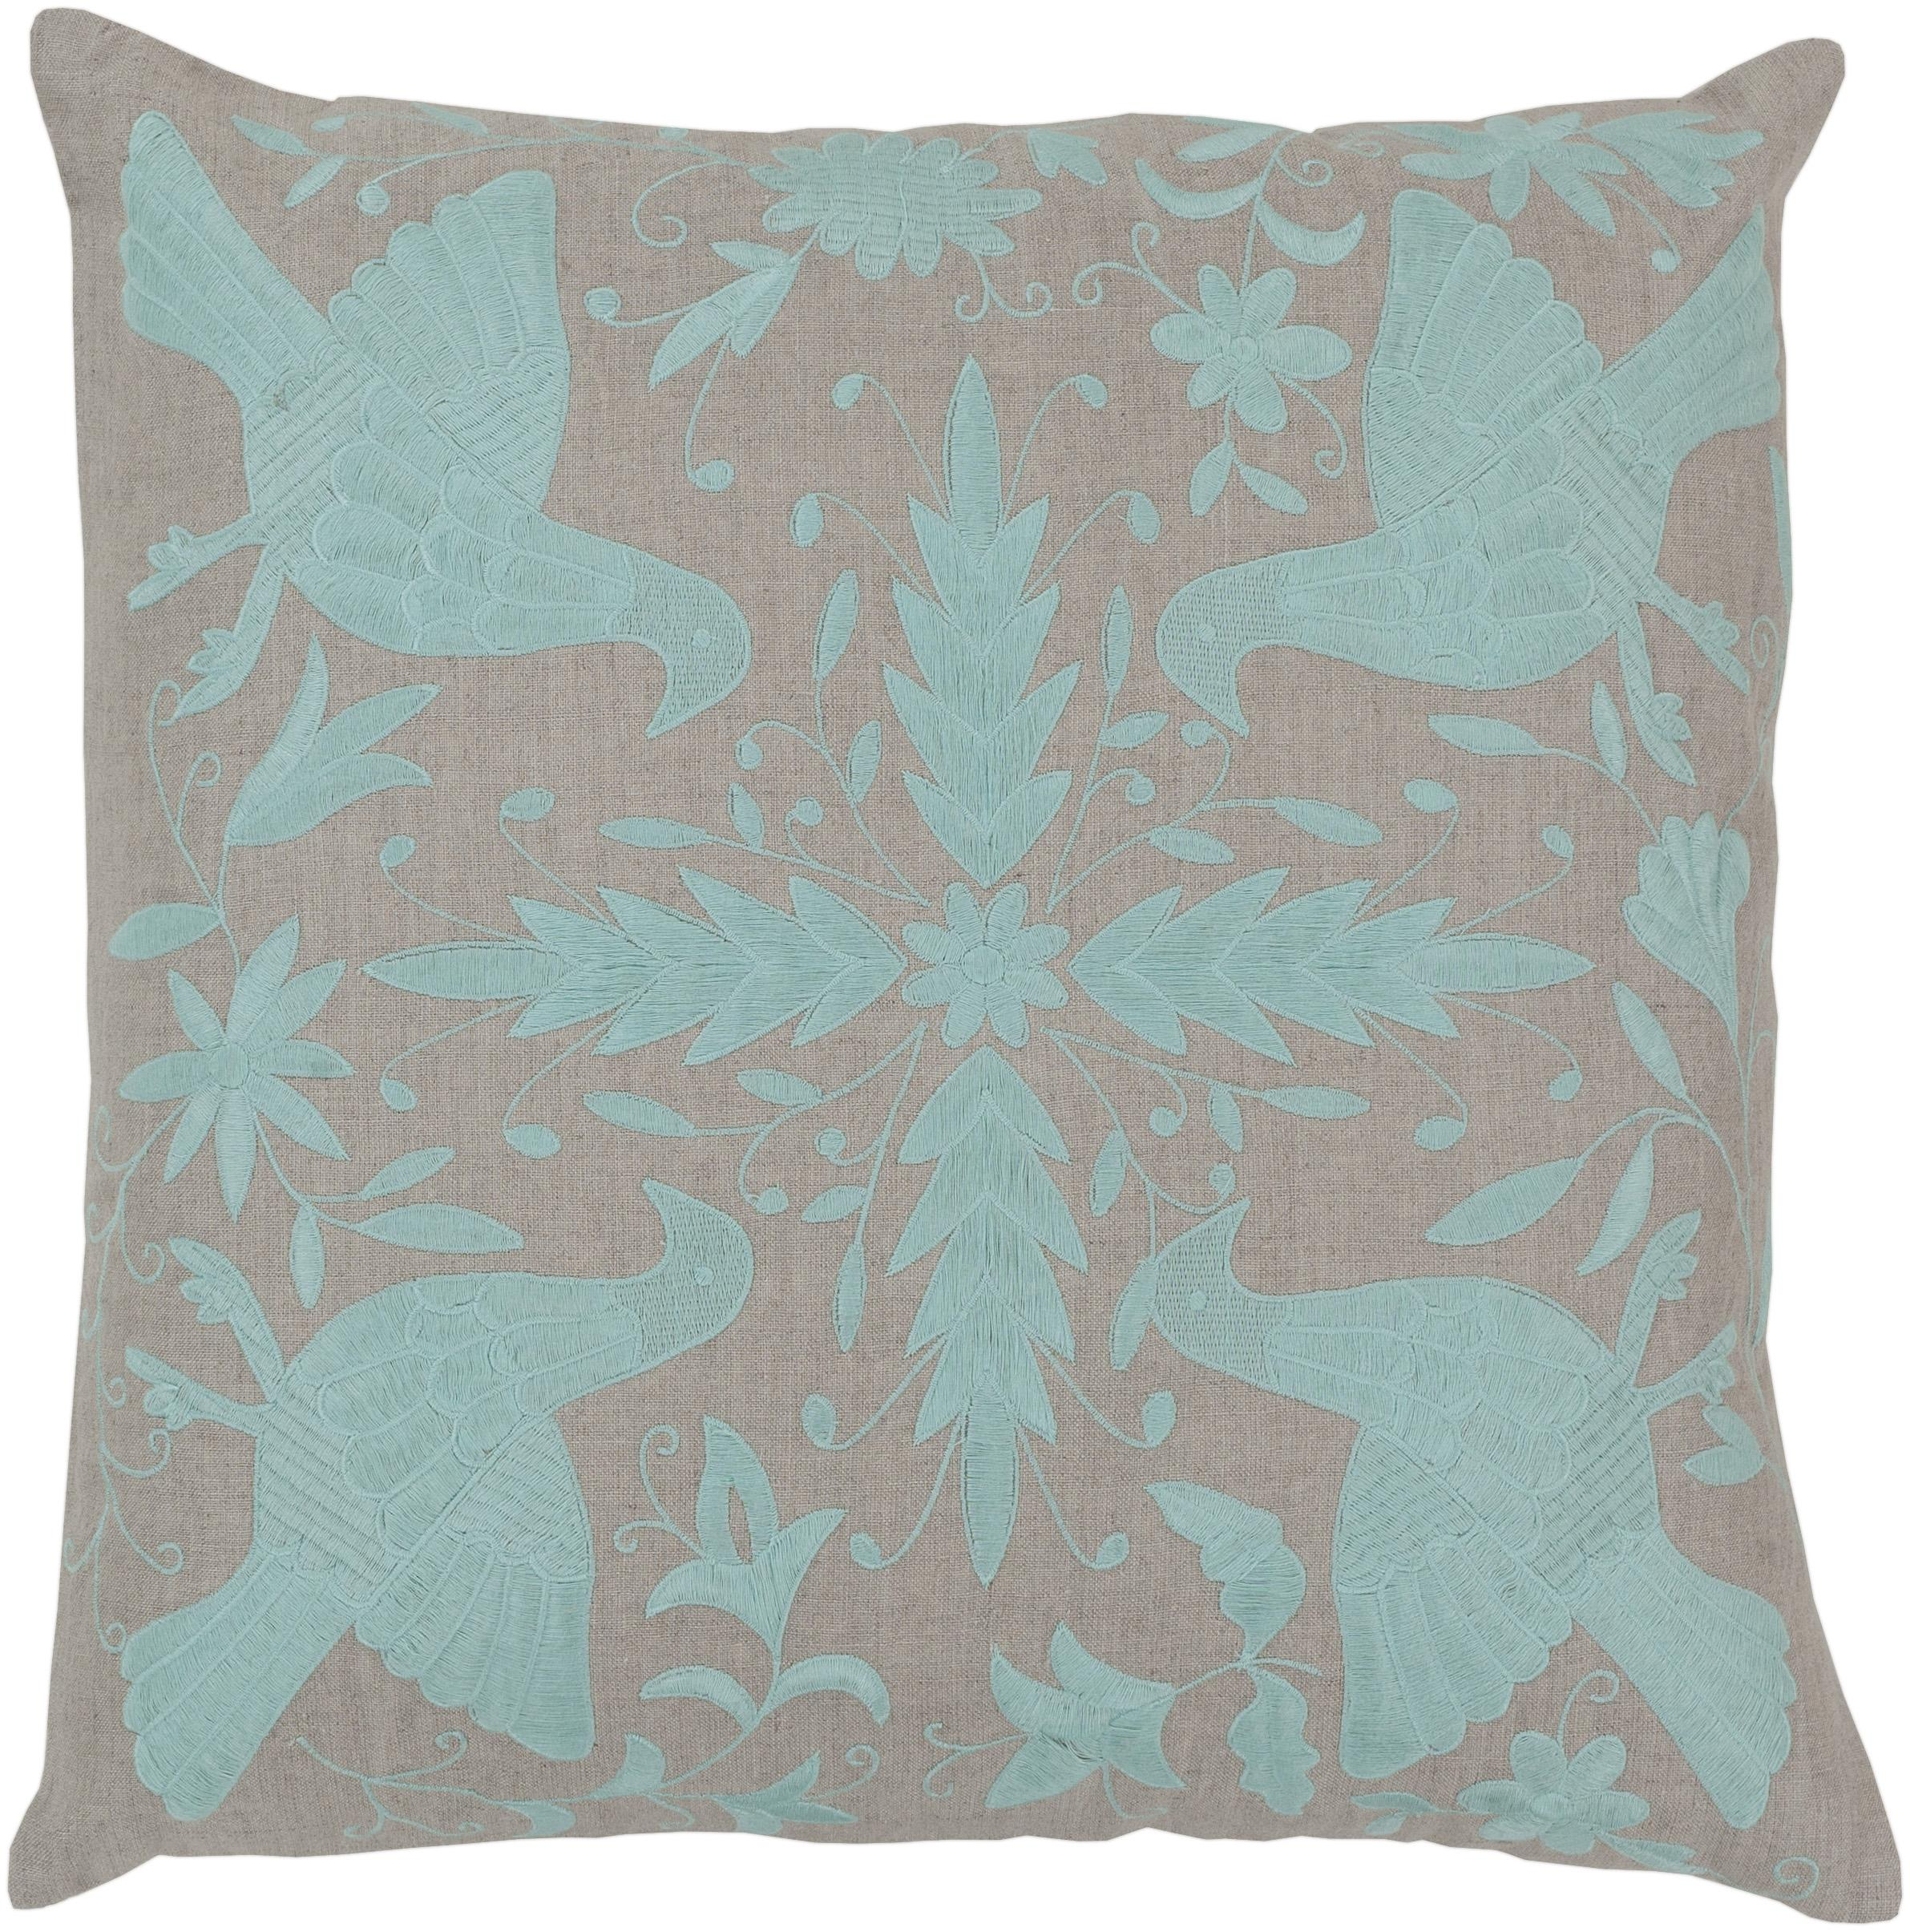 "Surya Pillows 22"" x 22"" Pillow - Item Number: LD019-2222P"